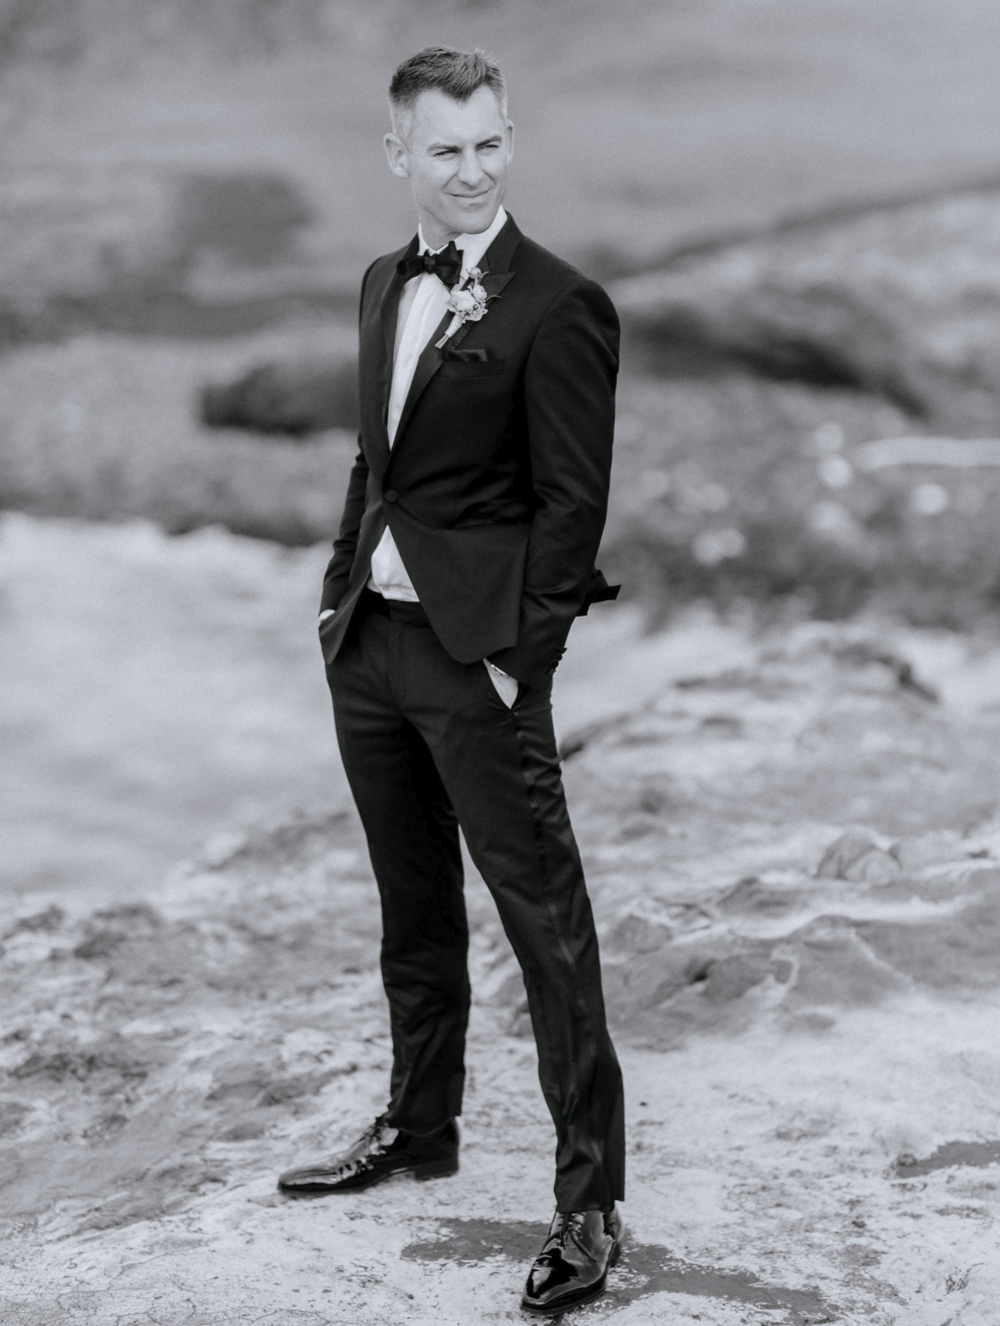 maui-wedding-photographer-chris-j-evans-grooms00006.png